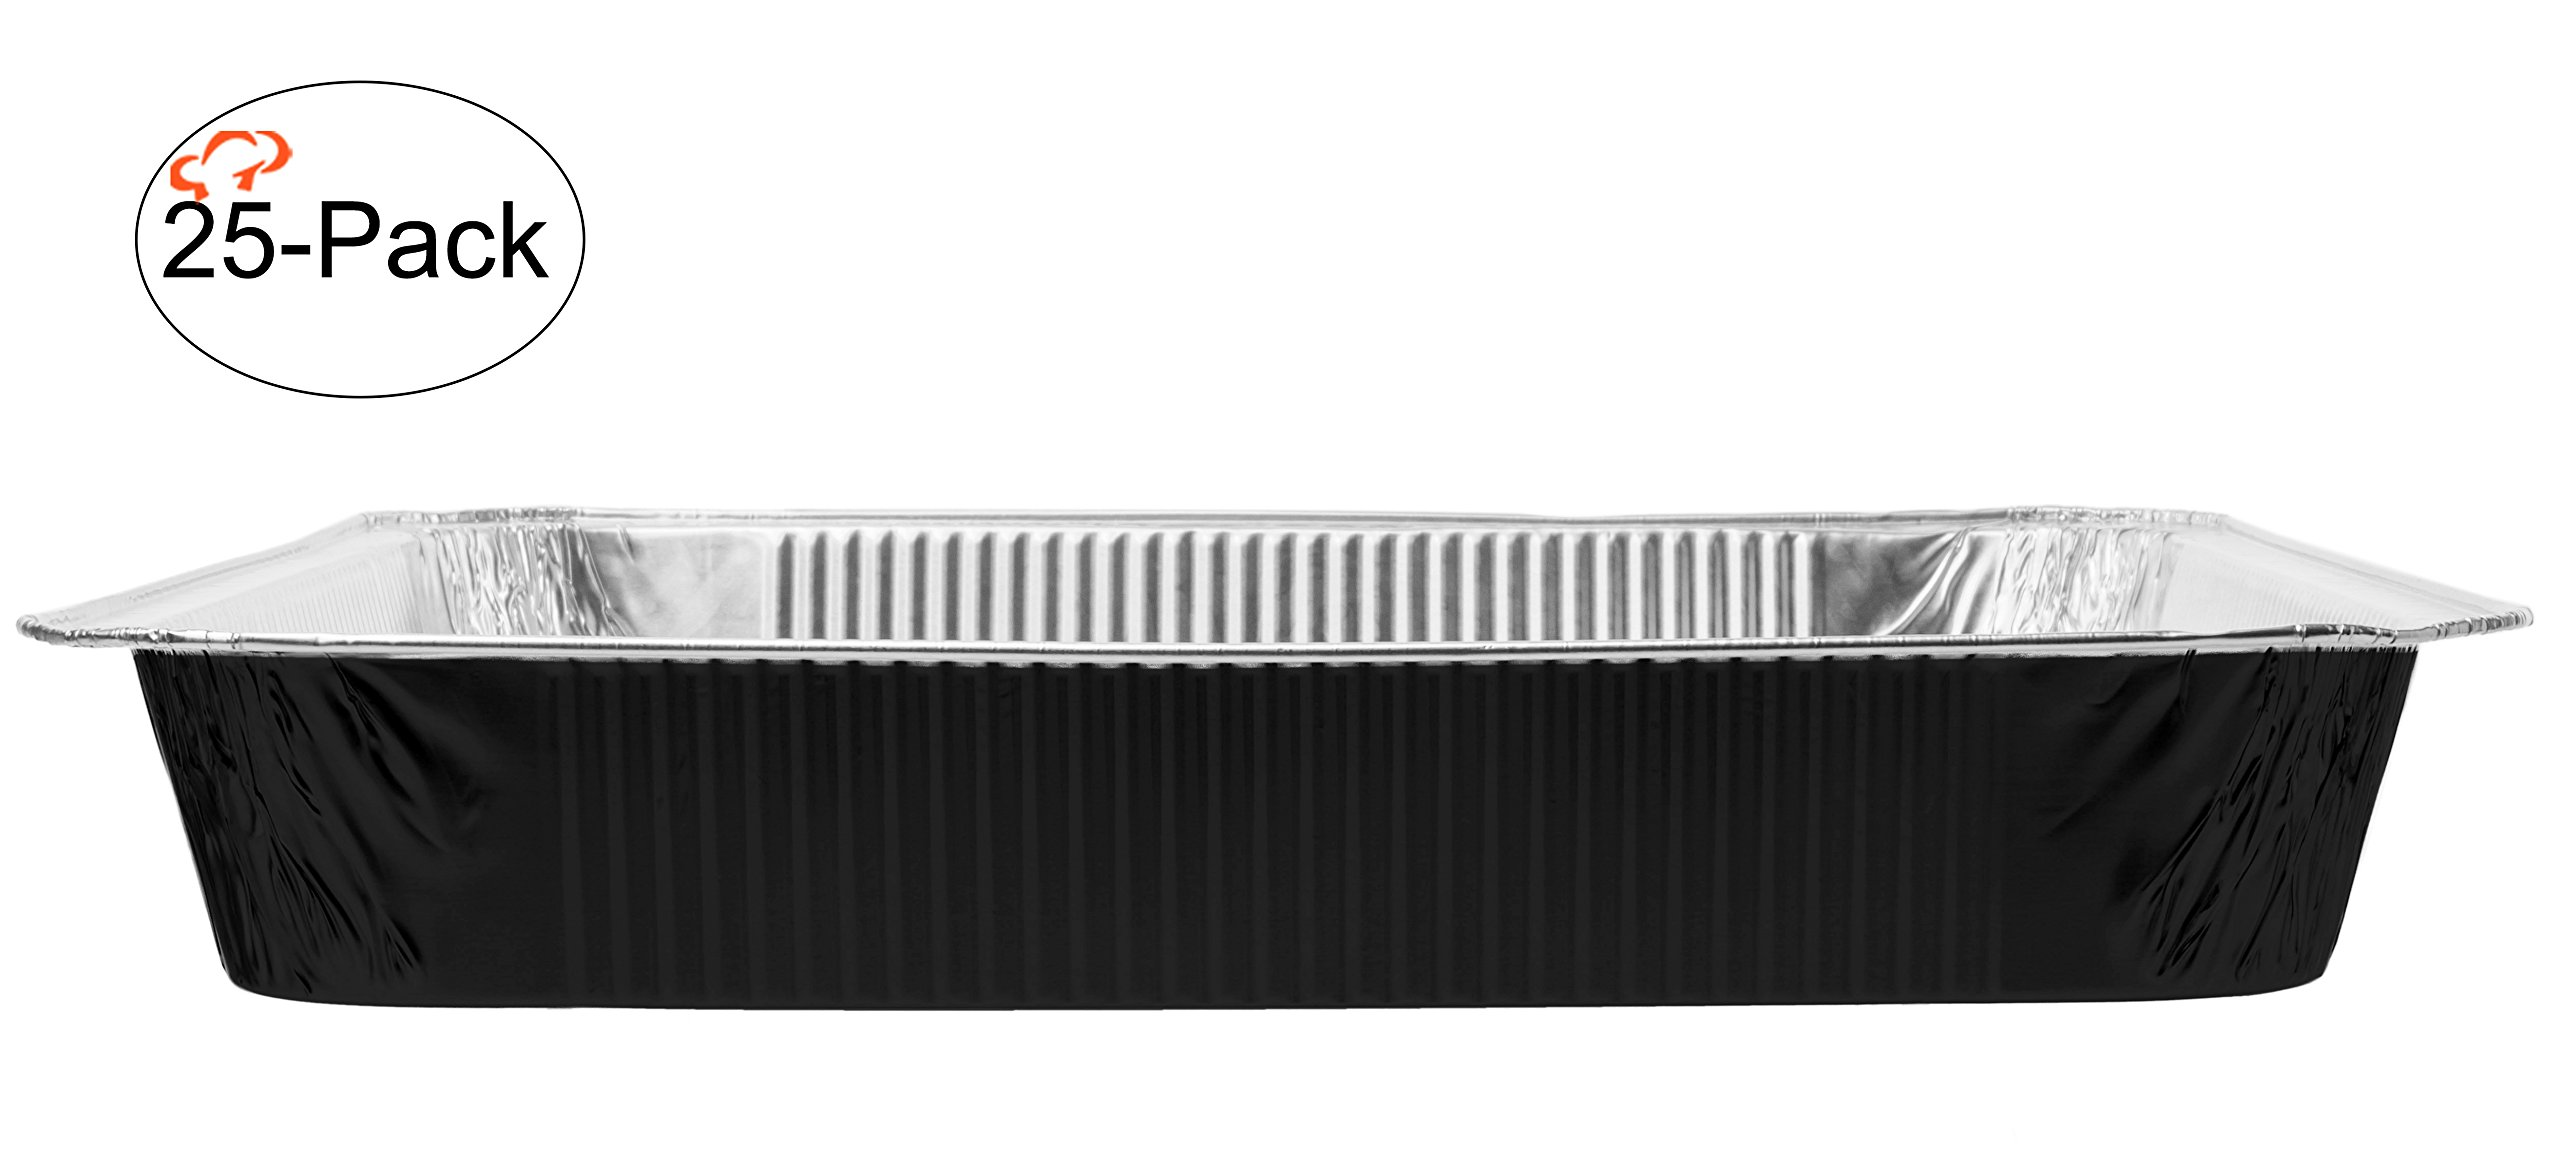 Tiger Chef Chafing Pans 25-Pack Black Disposable Aluminum Foil Steam Table Deep Baking Pans, Full Size - 19 5/8in x 11 5/8in x 2 3/16 inches